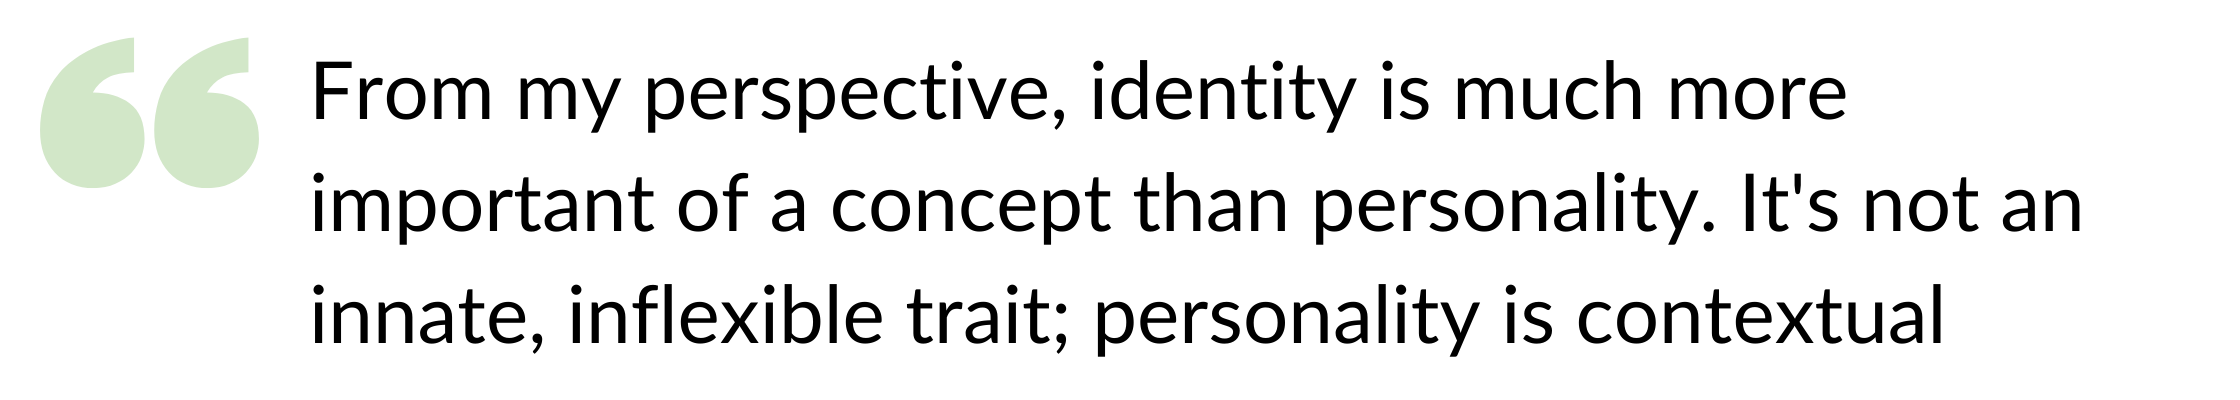 Identity is more important than personality